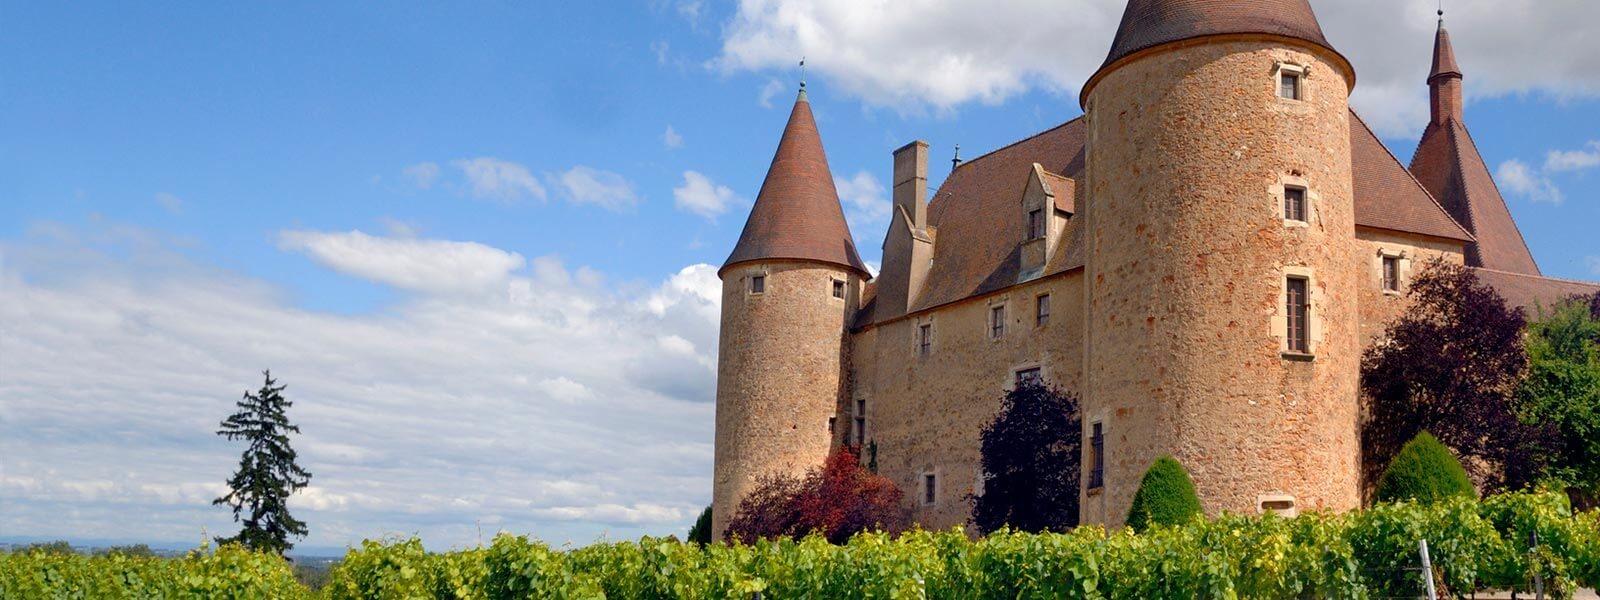 Kanpai Tourism - Beaujolais Crus Wines & Castles - Afternoon